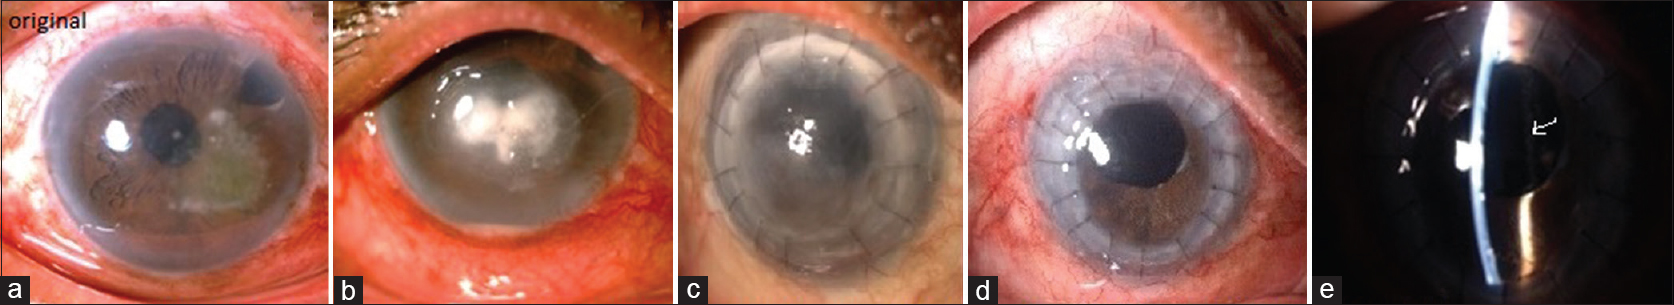 Figure 14: Case 10 (a) Superficial fungal ulcer at the time of presentation, (b) deep corneal infiltrate in spite of maximum medical treatment after 2 weeks, (c) failed graft after therapeutic penetrating keratoplasty, (d) repeat penetrating keratoplasty with scleral-fixated intraocular lens after 1 year (e) scleral-fixated intraocular lens after on slit lamp on oblique illumination